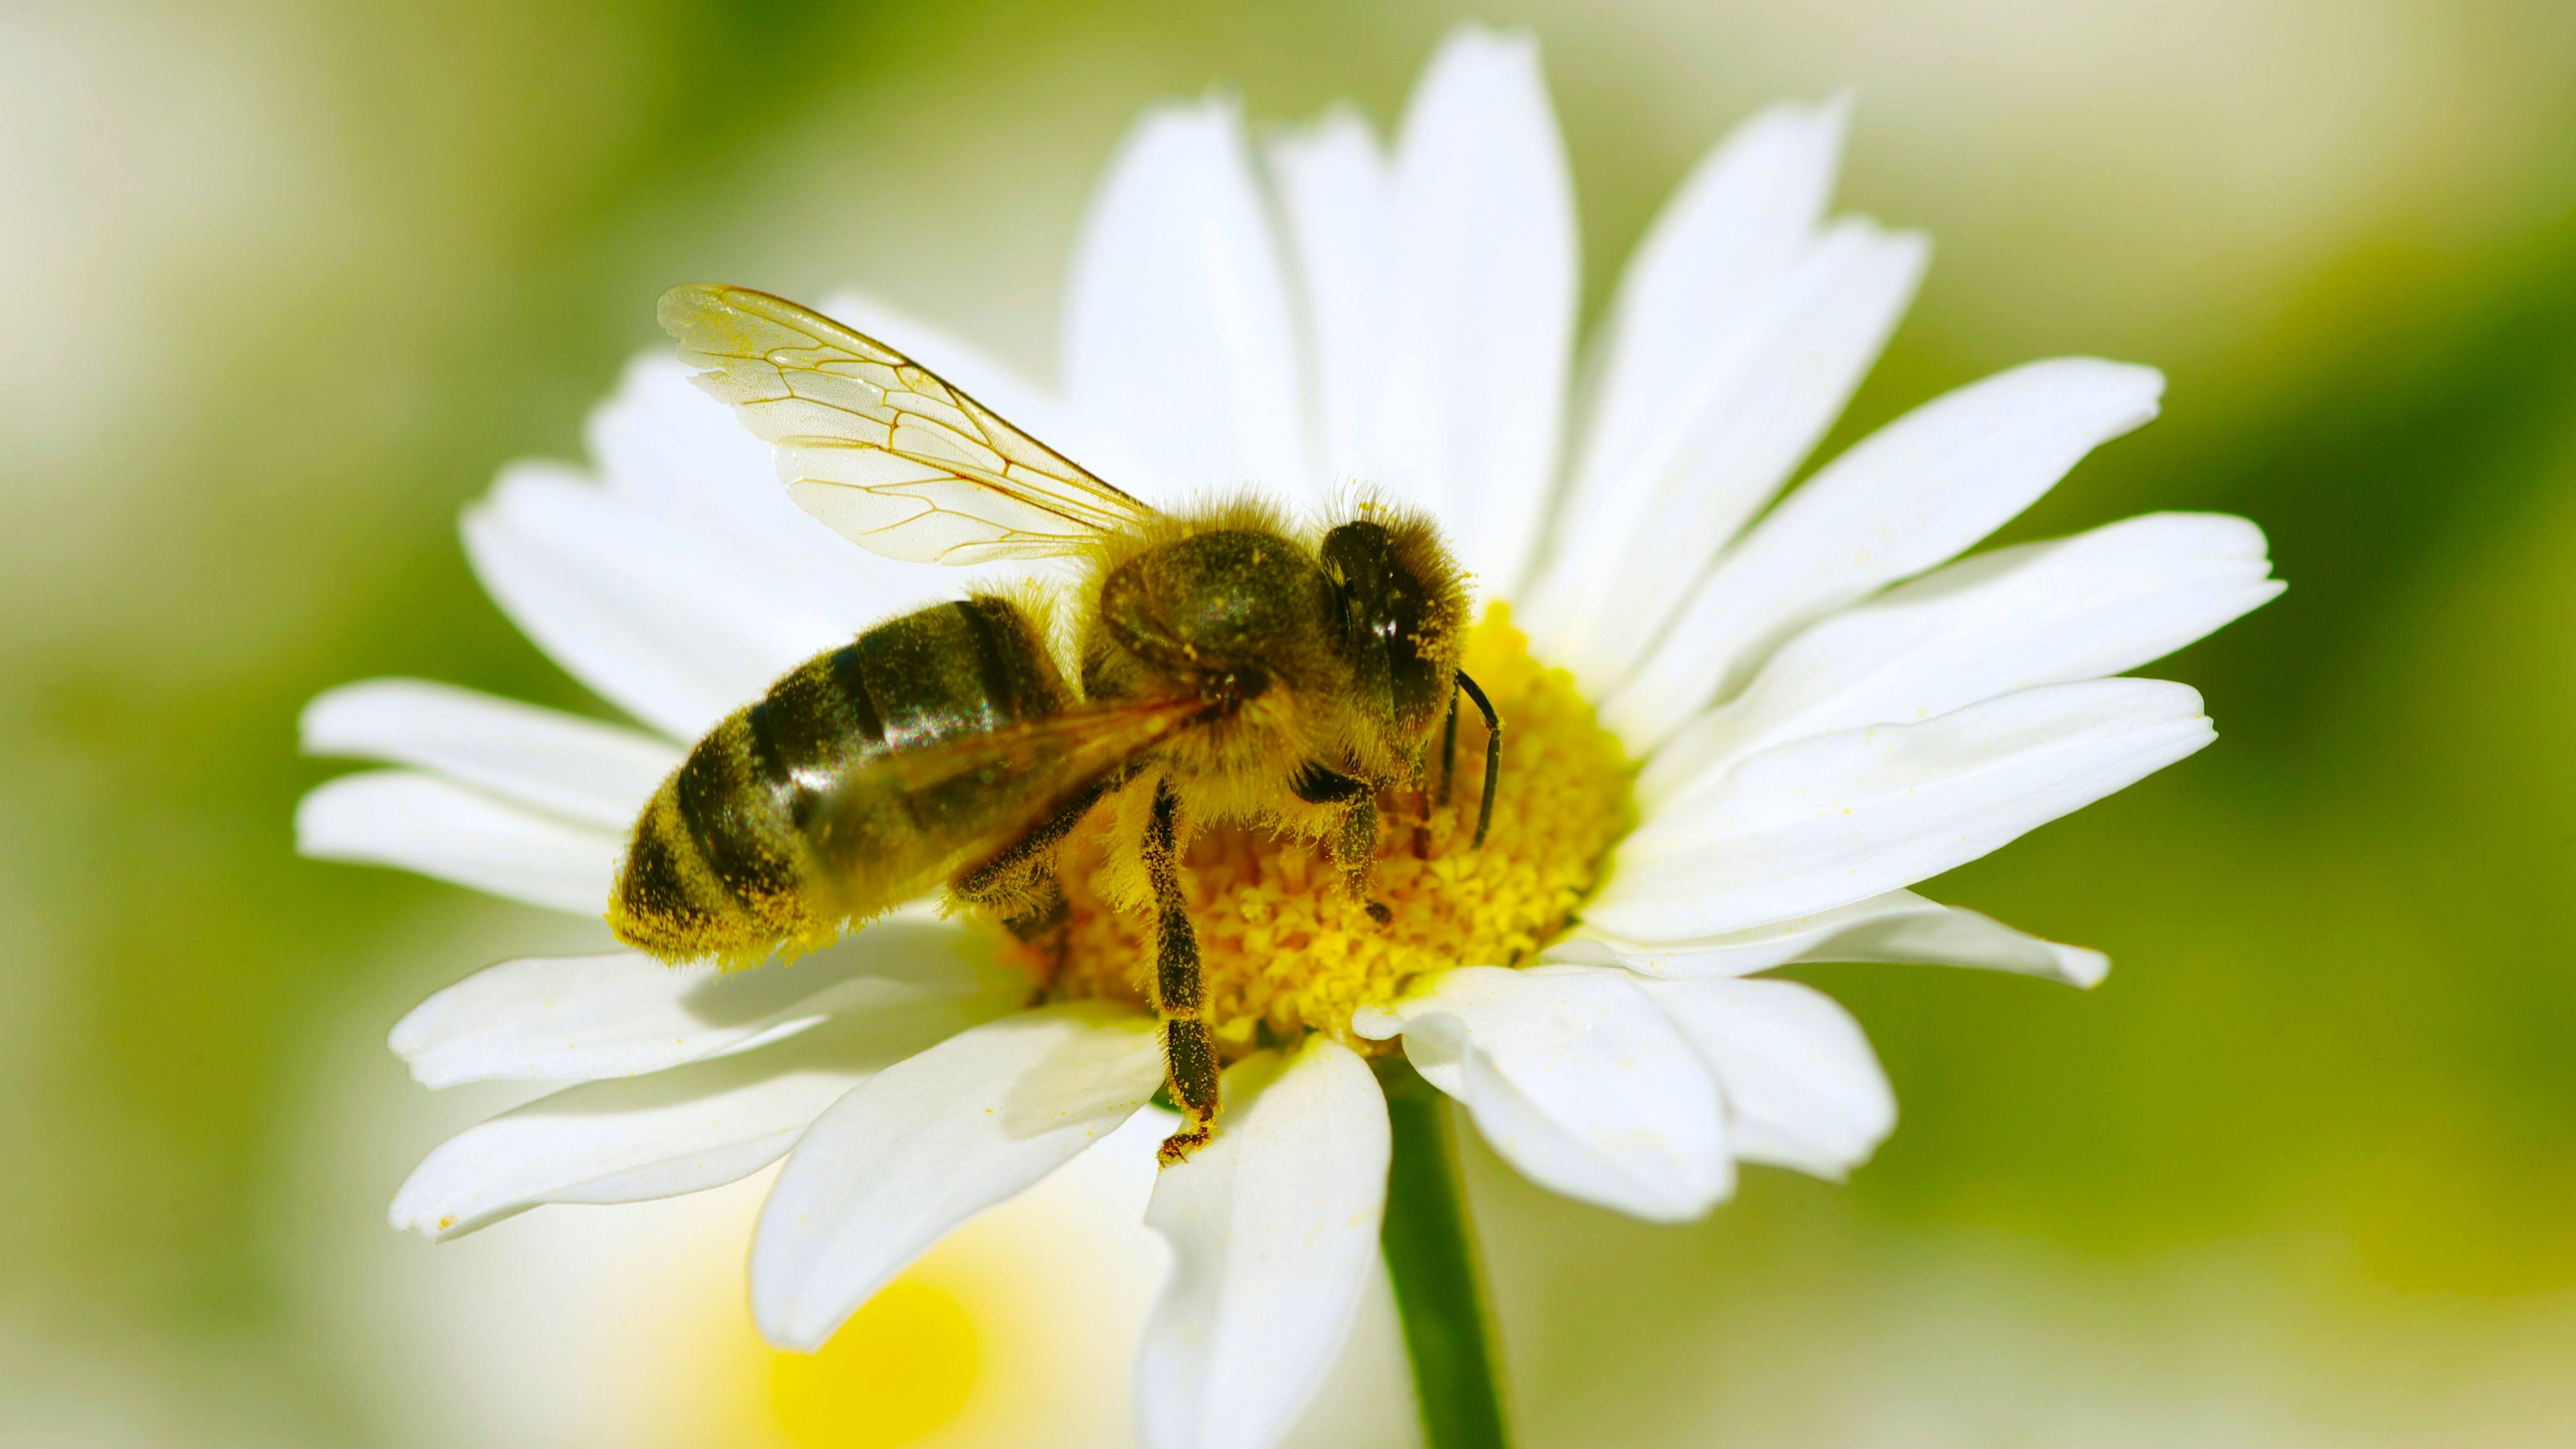 a bee taking pollen from a flower